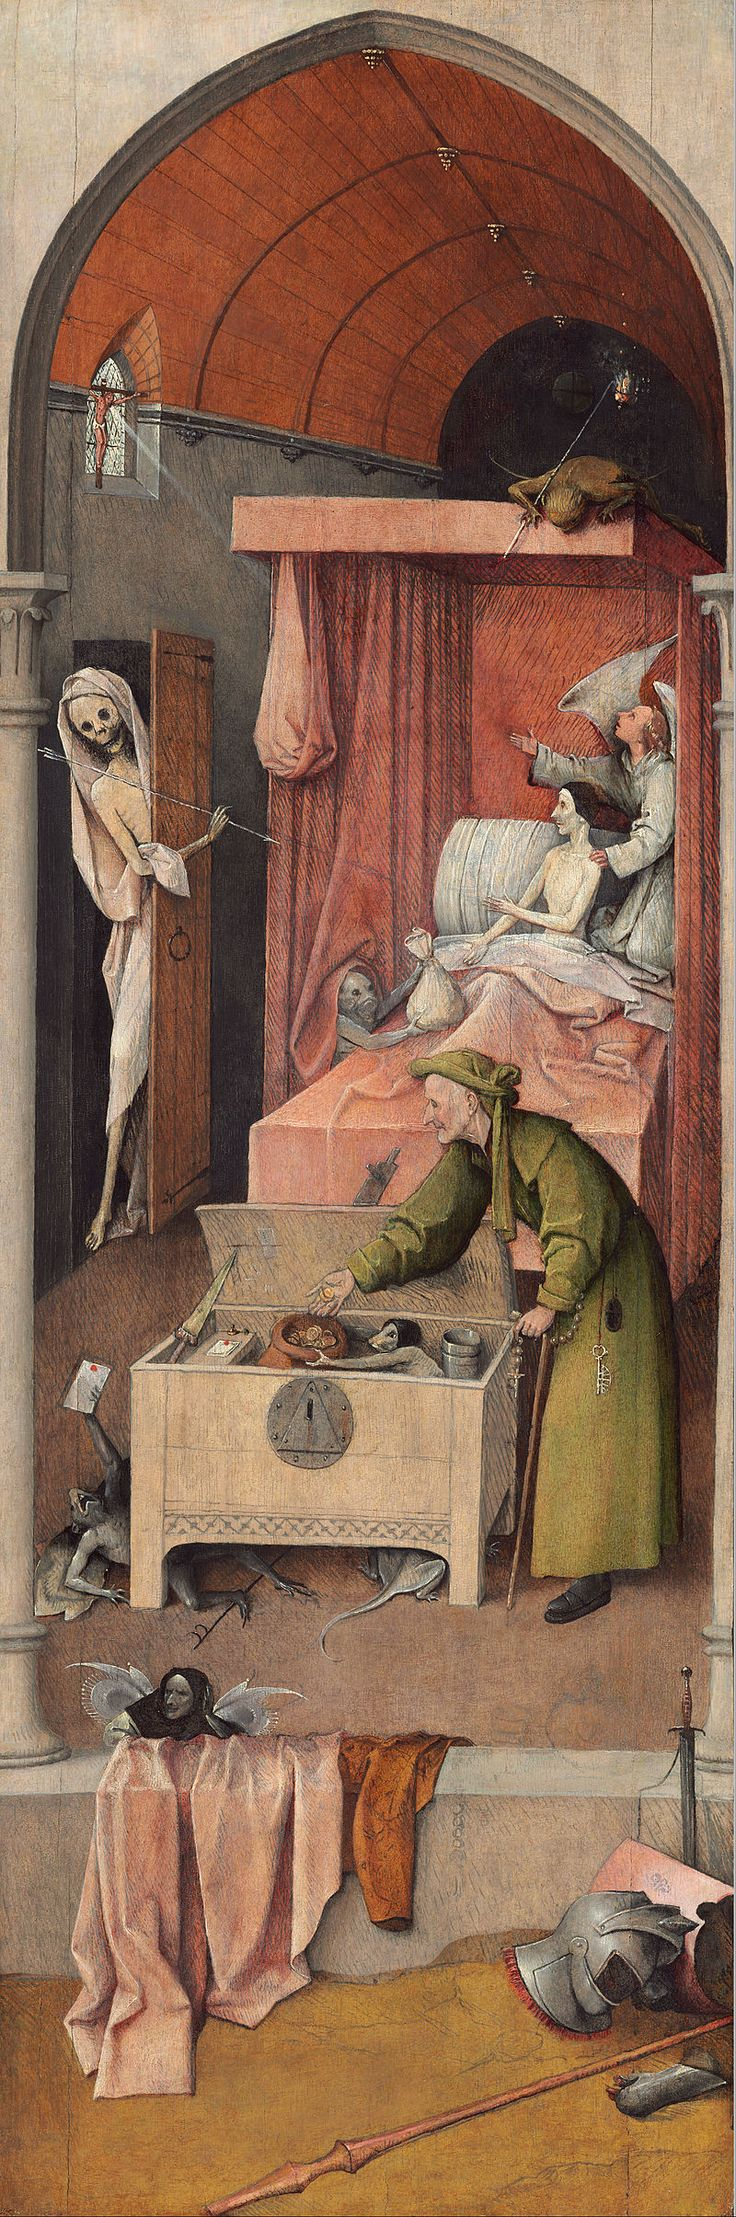 Hieronymus Bosch | Death and the Miser | 1494-